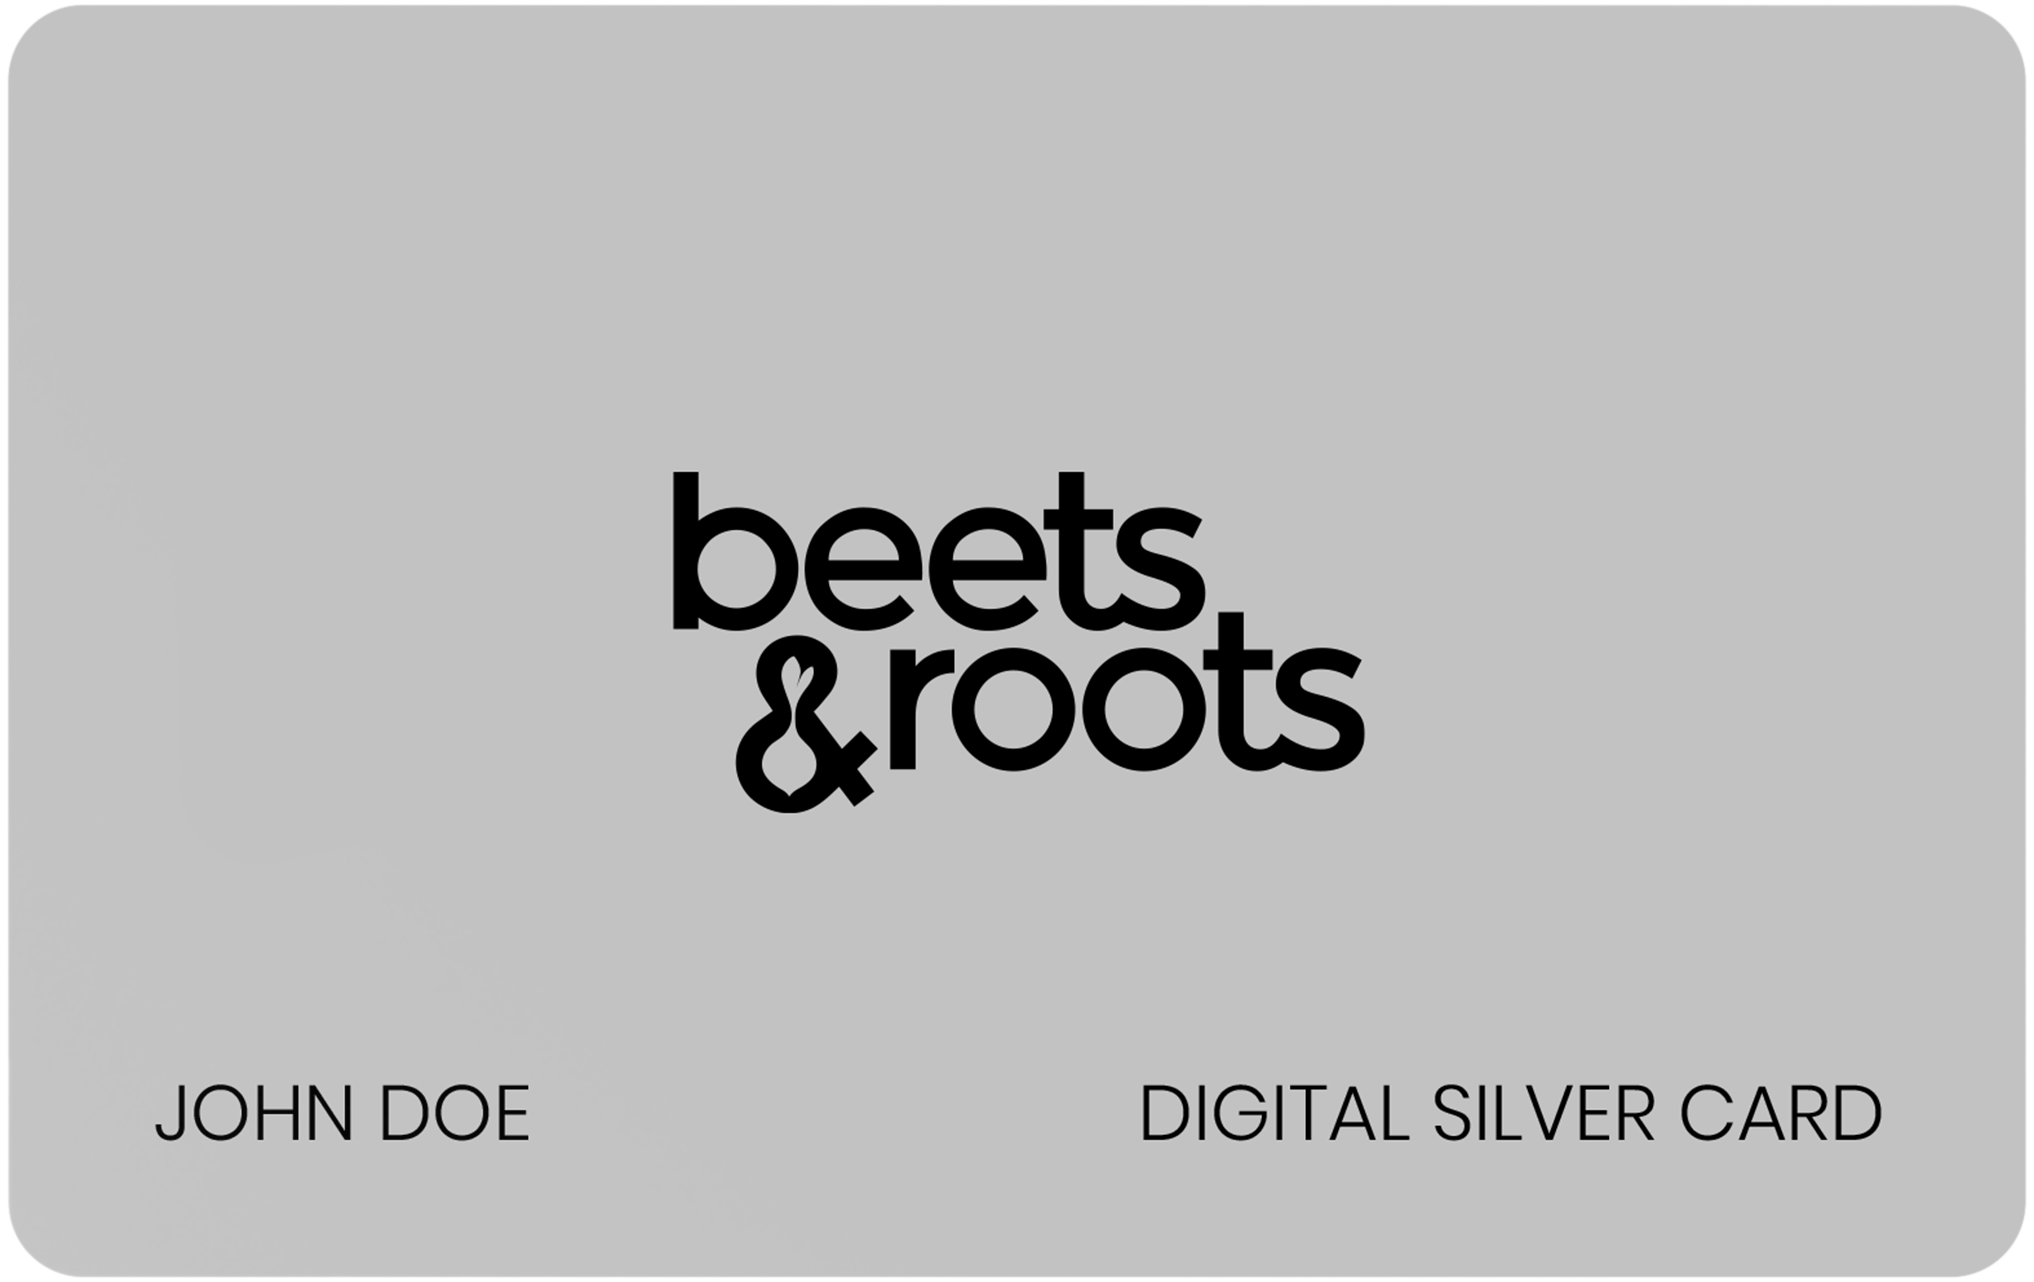 https://beetsandroots-data-library.s3.eu-central-1.amazonaws.com/PWA/ogf-silver-card.png